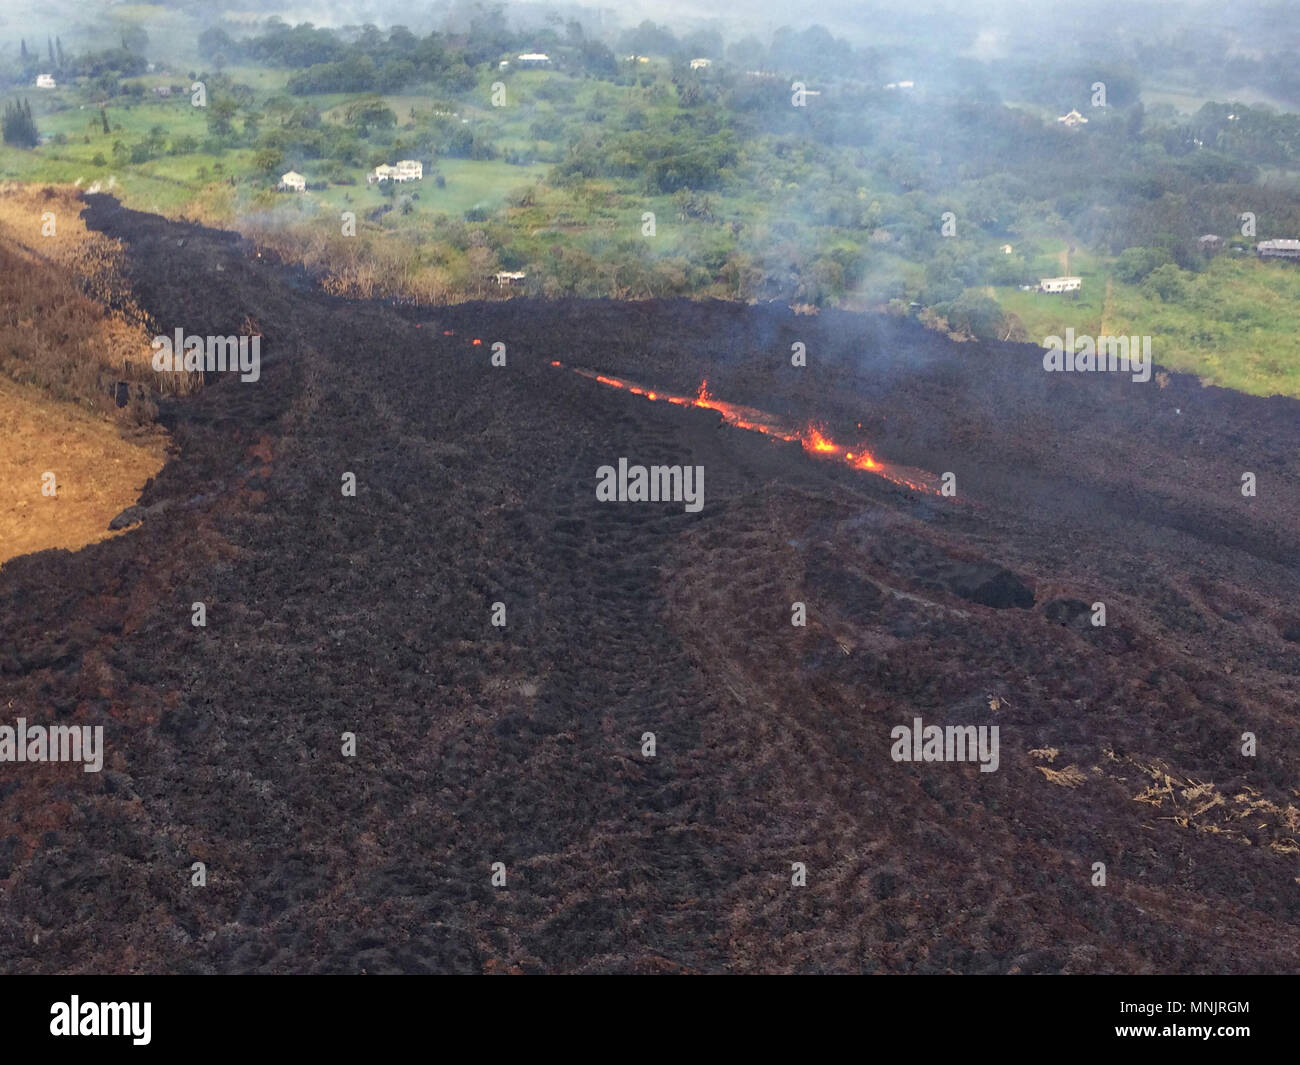 Lava and poisonous sulfur dioxide plumes rise from fissure 17 along the eastern rift caused by the eruption of the Kilauea volcano May 17, 2018 in Pahoa, Hawaii. The recent eruption continues destroying homes, forcing evacuations and spewing lava and poison gas on the Big Island of Hawaii. - Stock Image